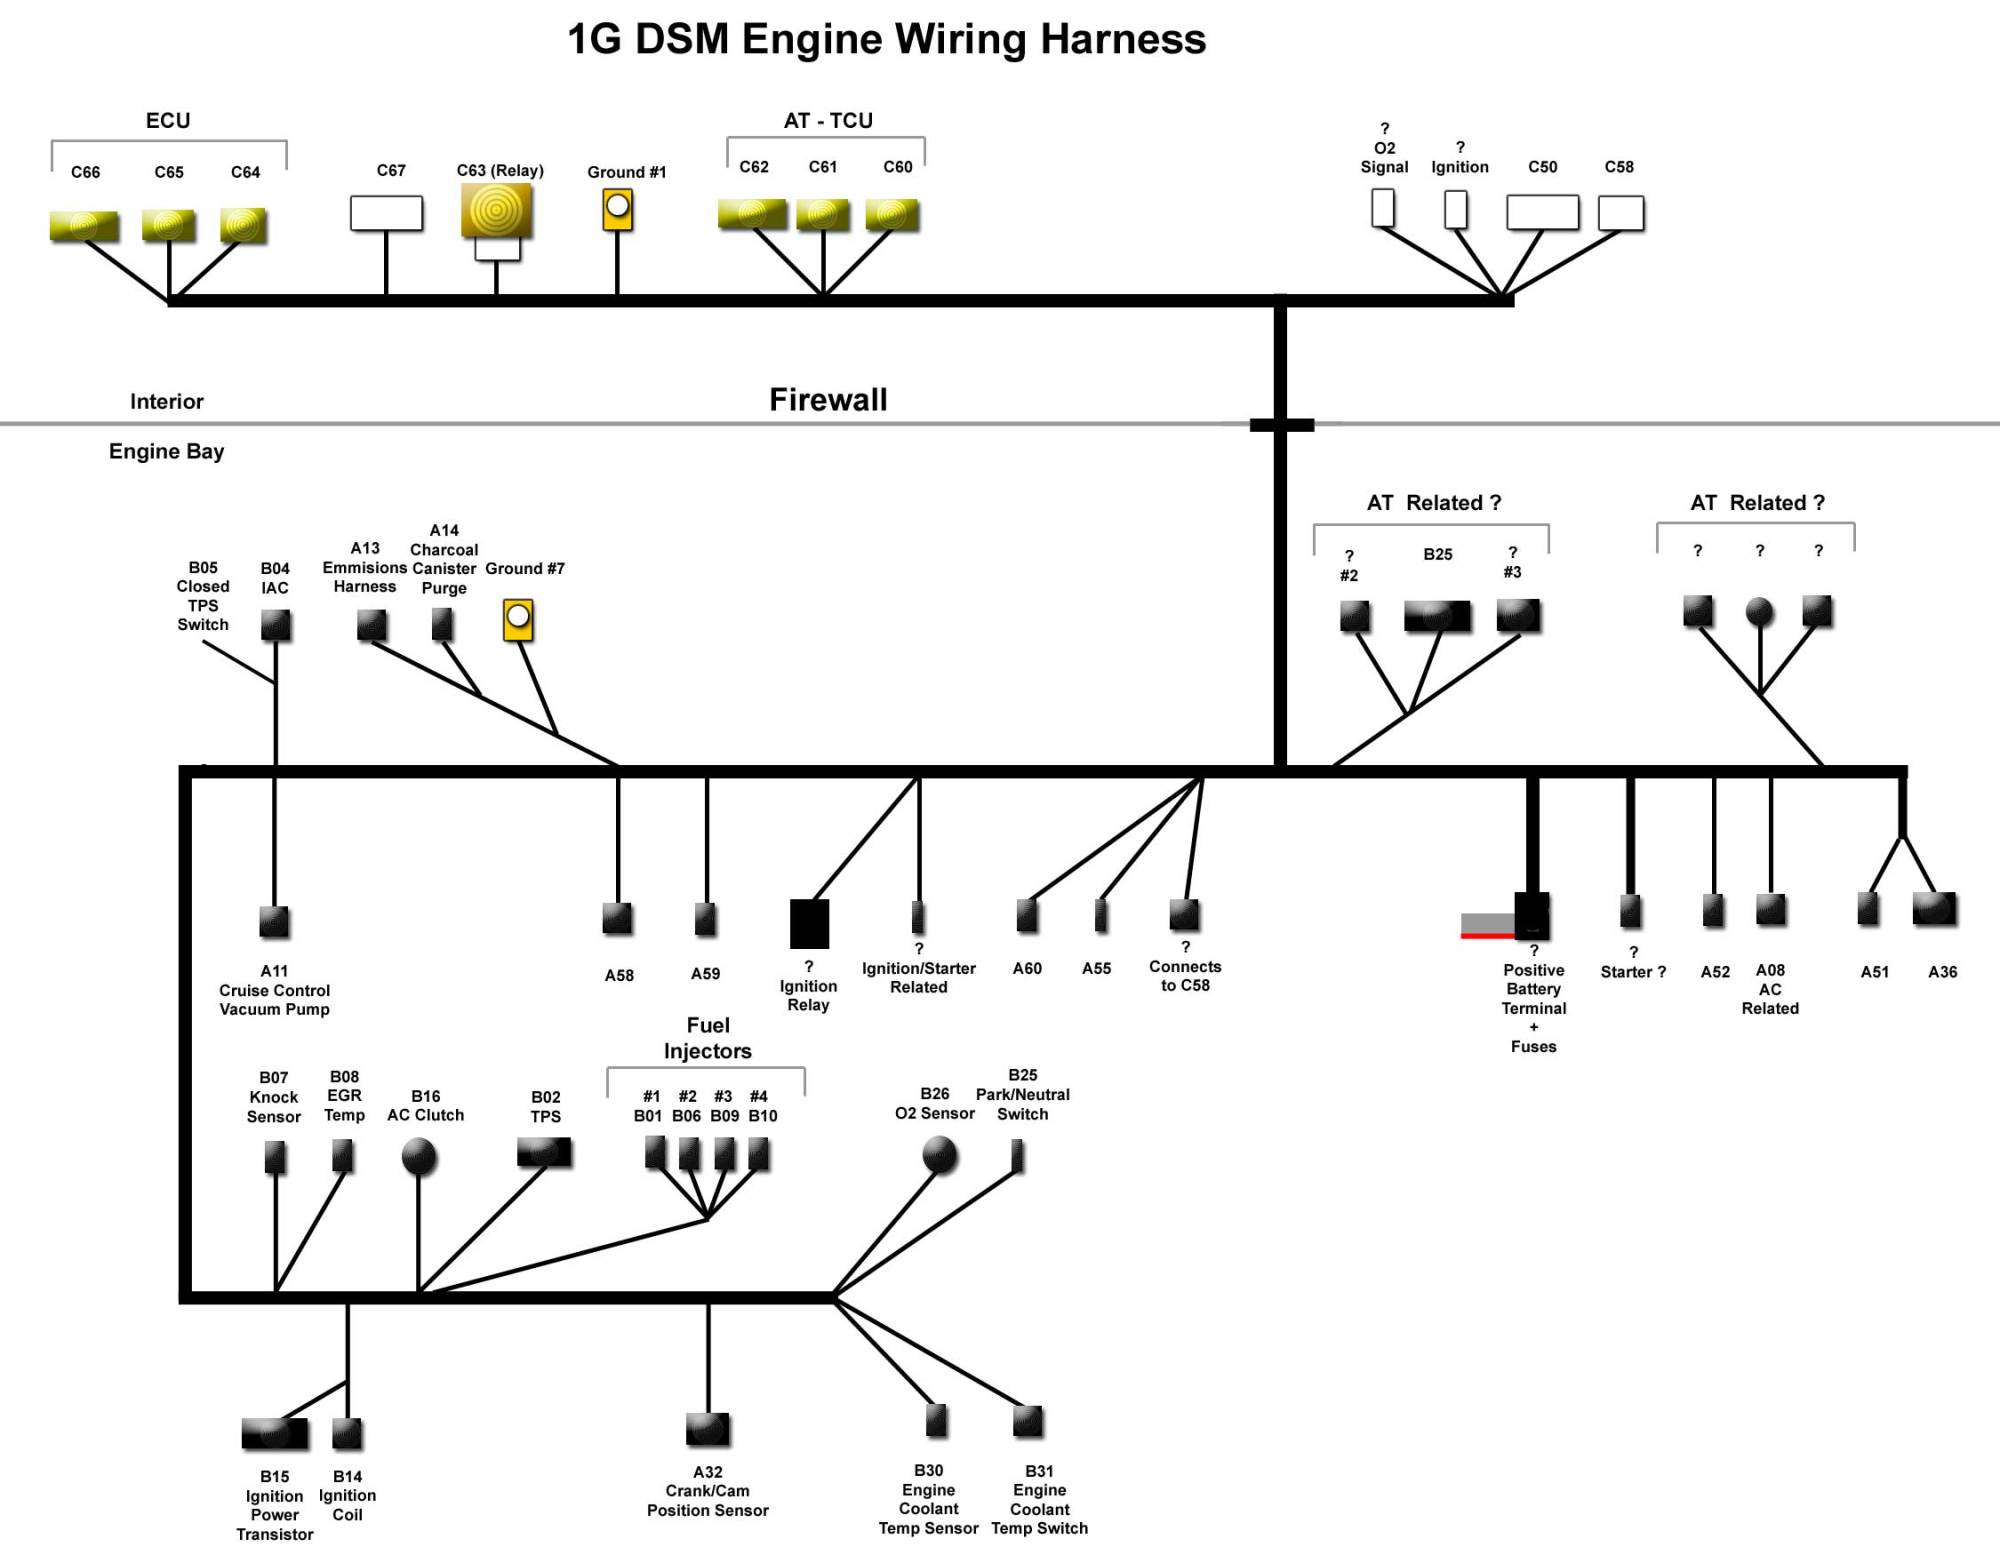 hight resolution of 4g63 wiring diagram wiring diagram todays1gb dsm 4g63 turbo wiring harness diagram 4g63 wiring diagram 4g63